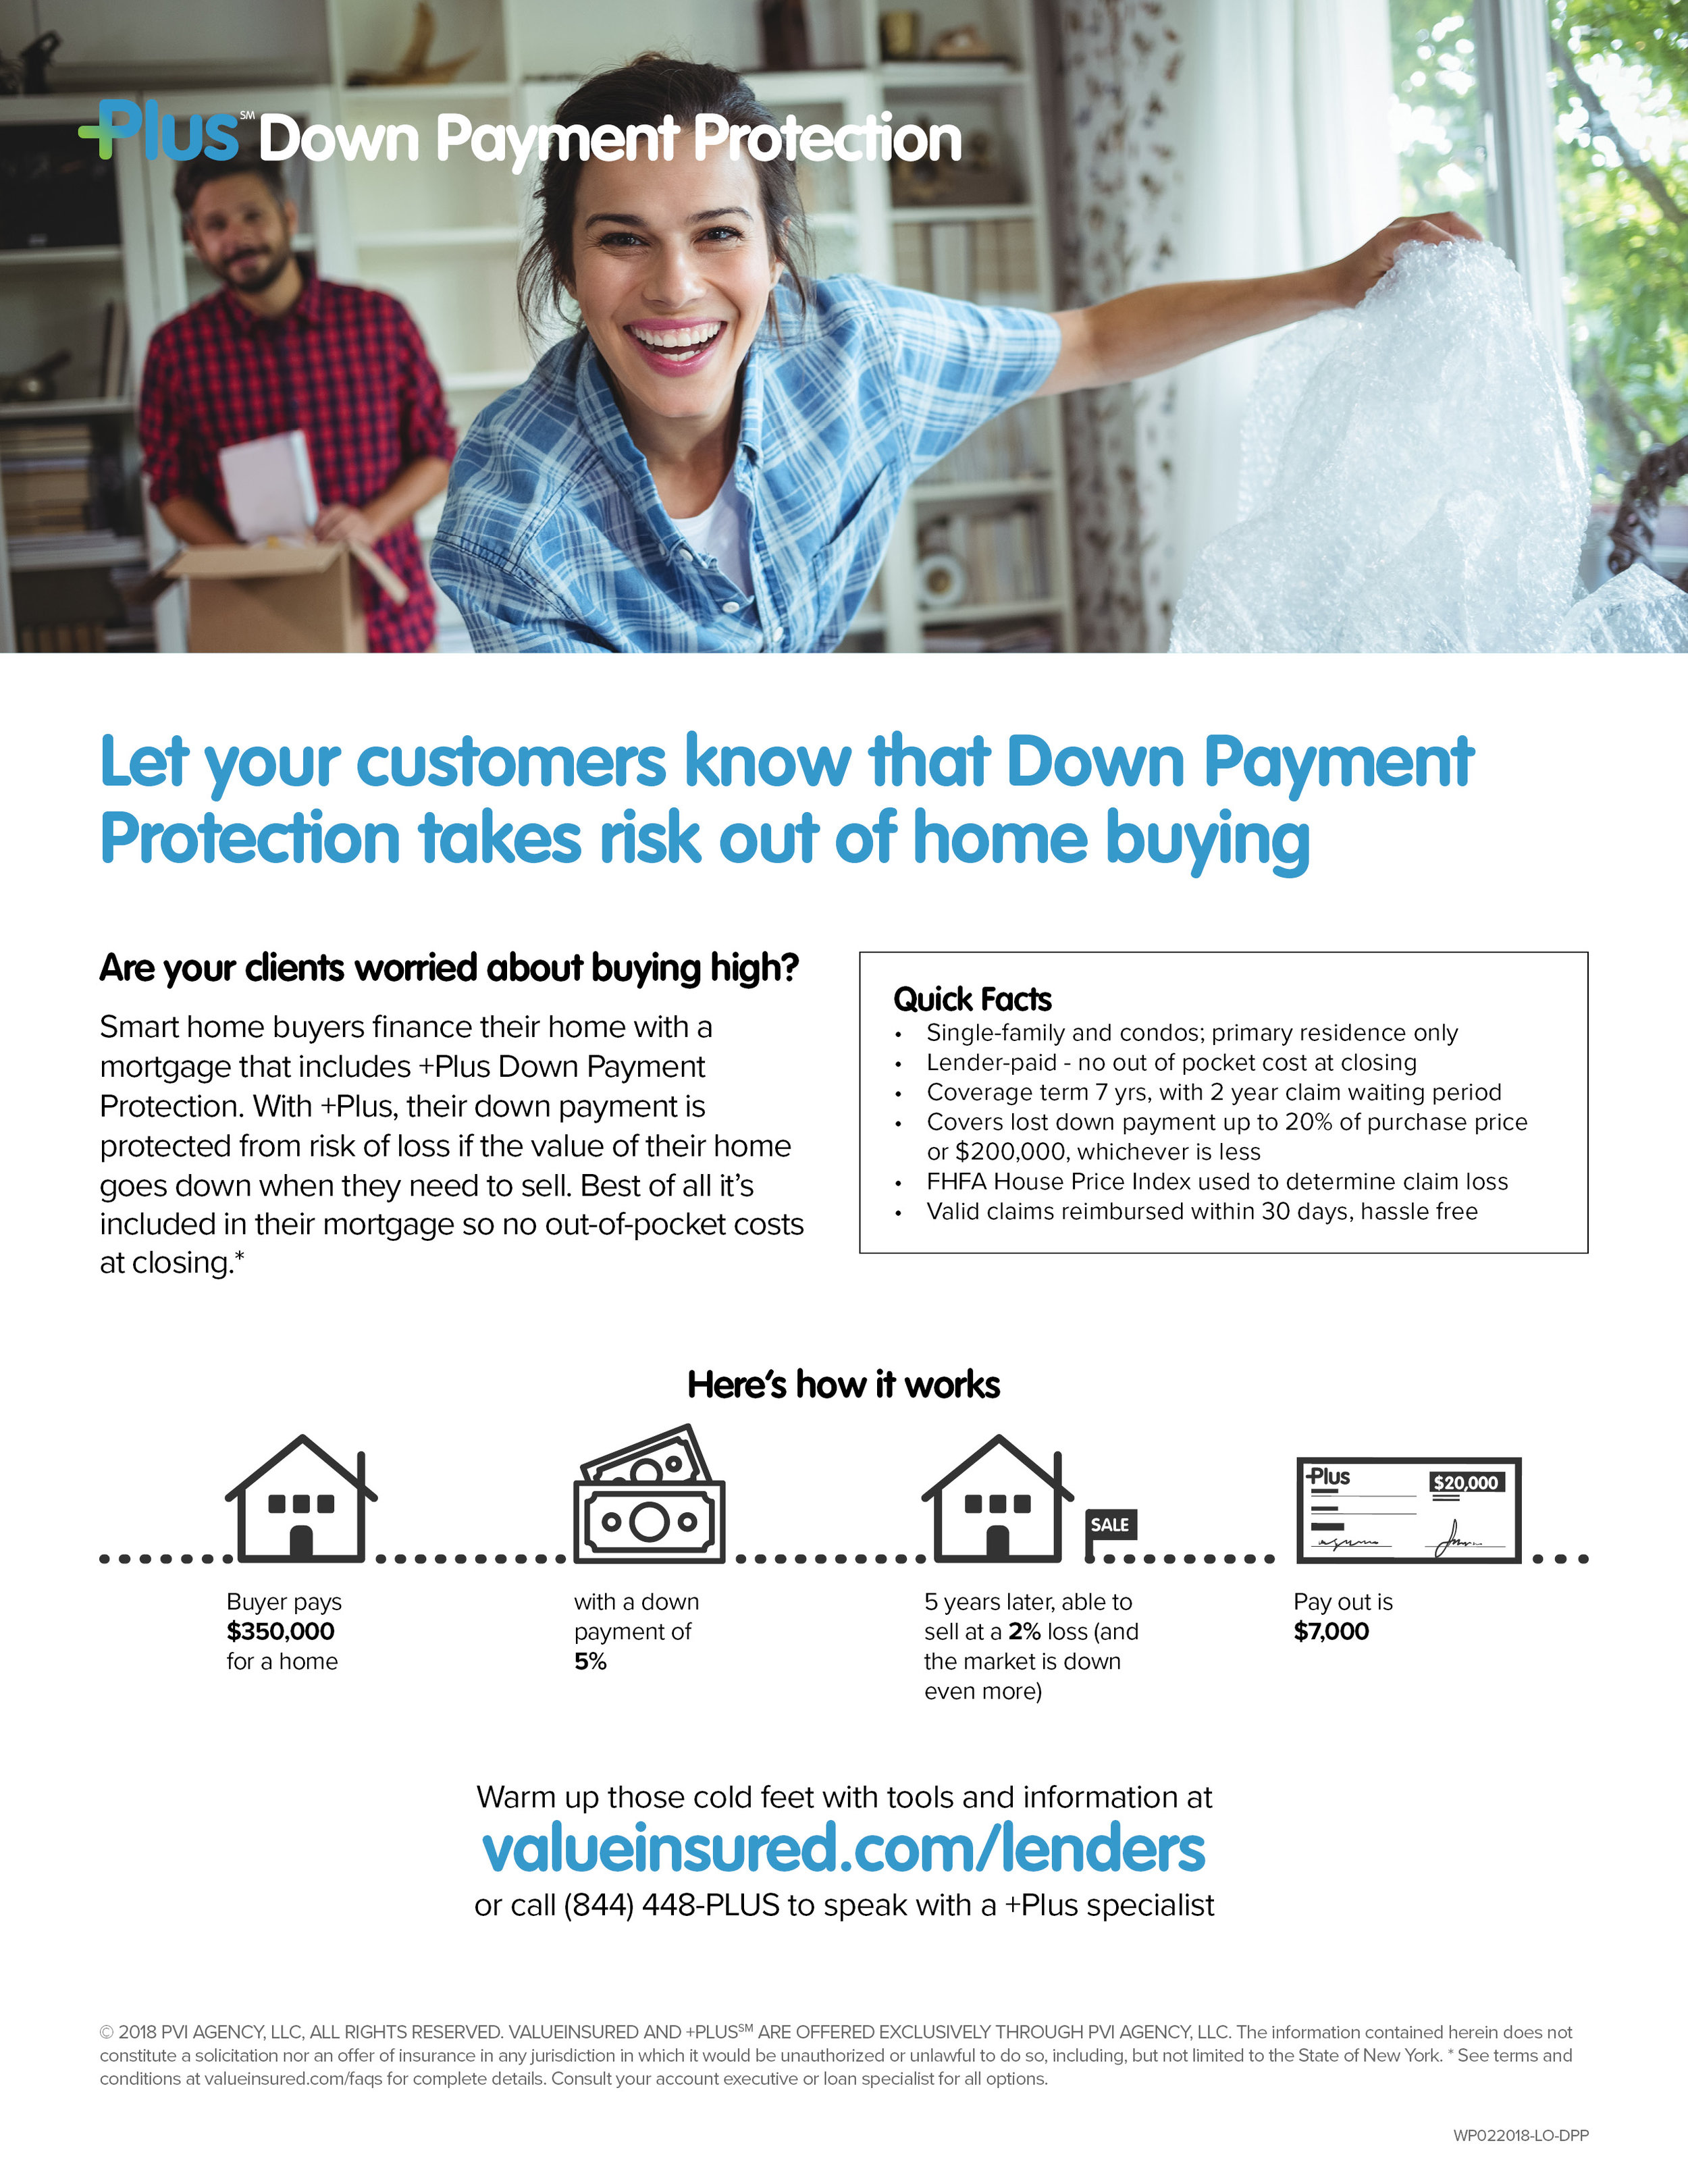 DPP For Loan Specialists (+Plus Branded)